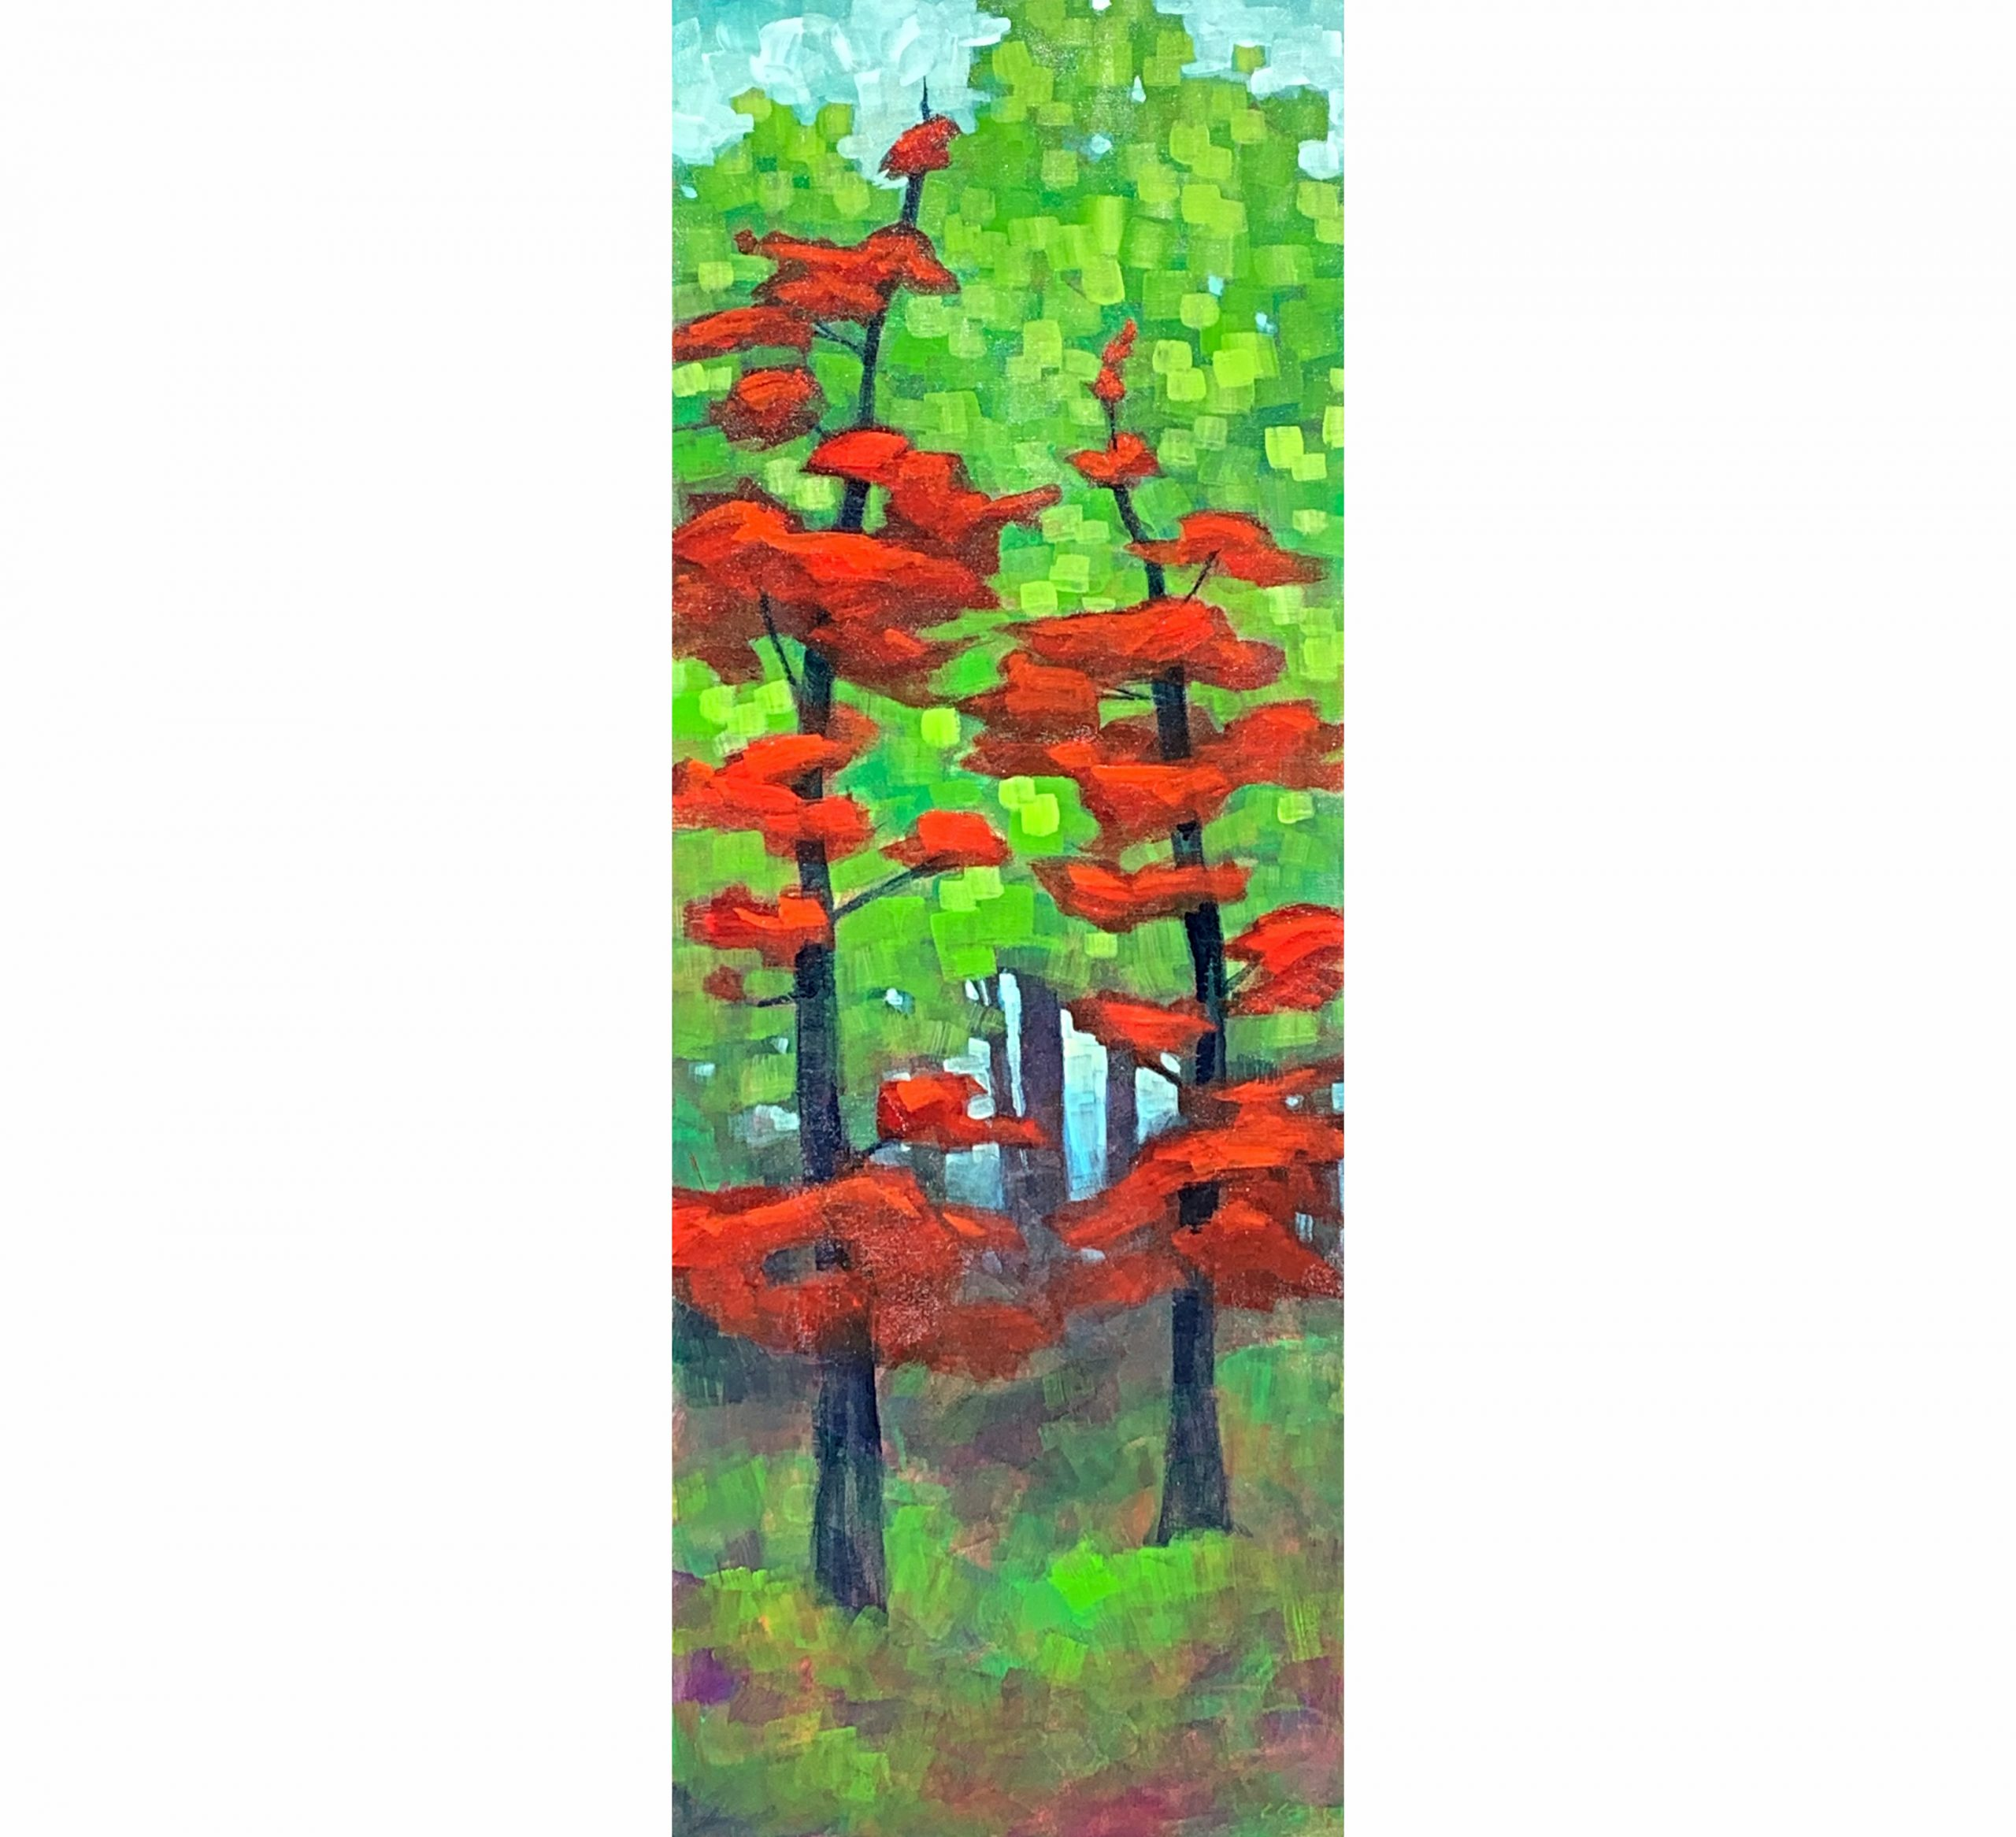 A Way Through, acrylic tree painting by Connie Geerts | Effusion Art Gallery + Cast Glass Studio, Invermere BC